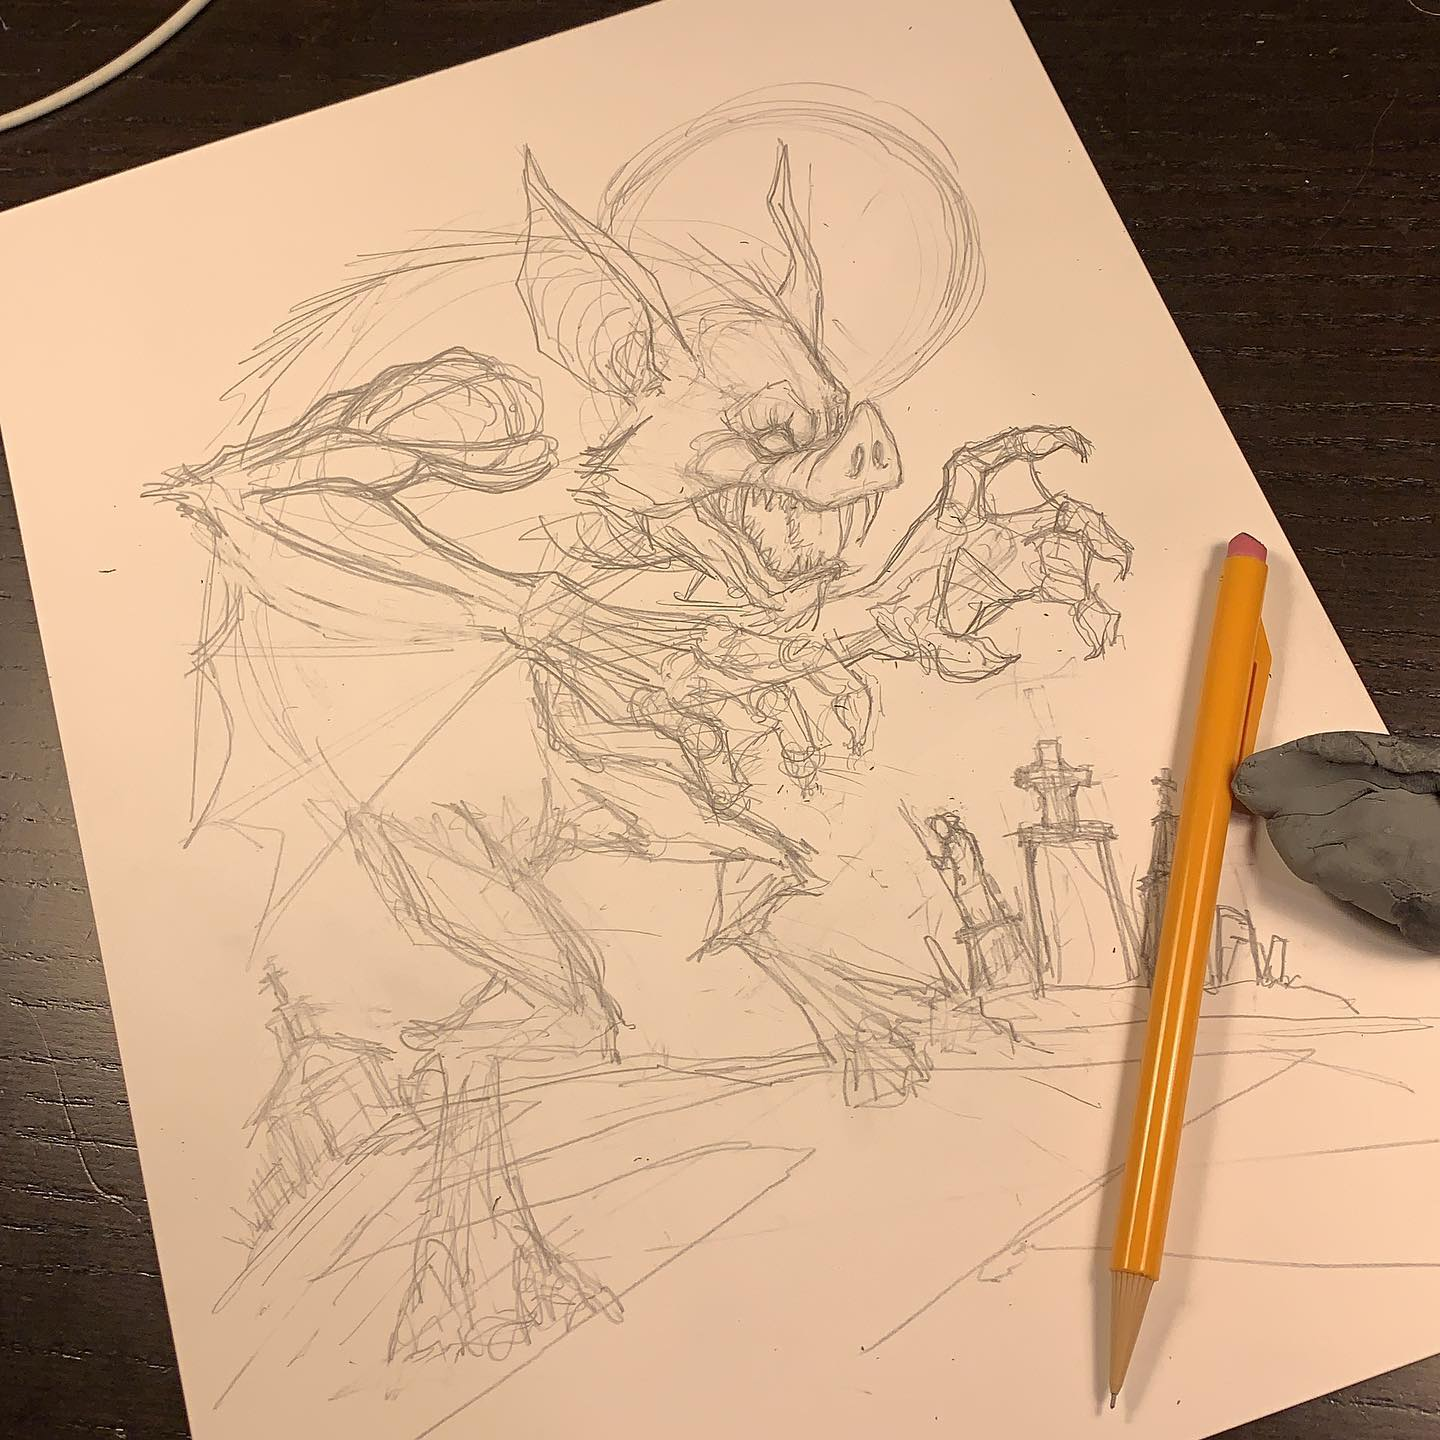 Working on a piece for an old art buddy. Late but not forgotten. @jefflachance finally chipping away at your vampire man-bat.